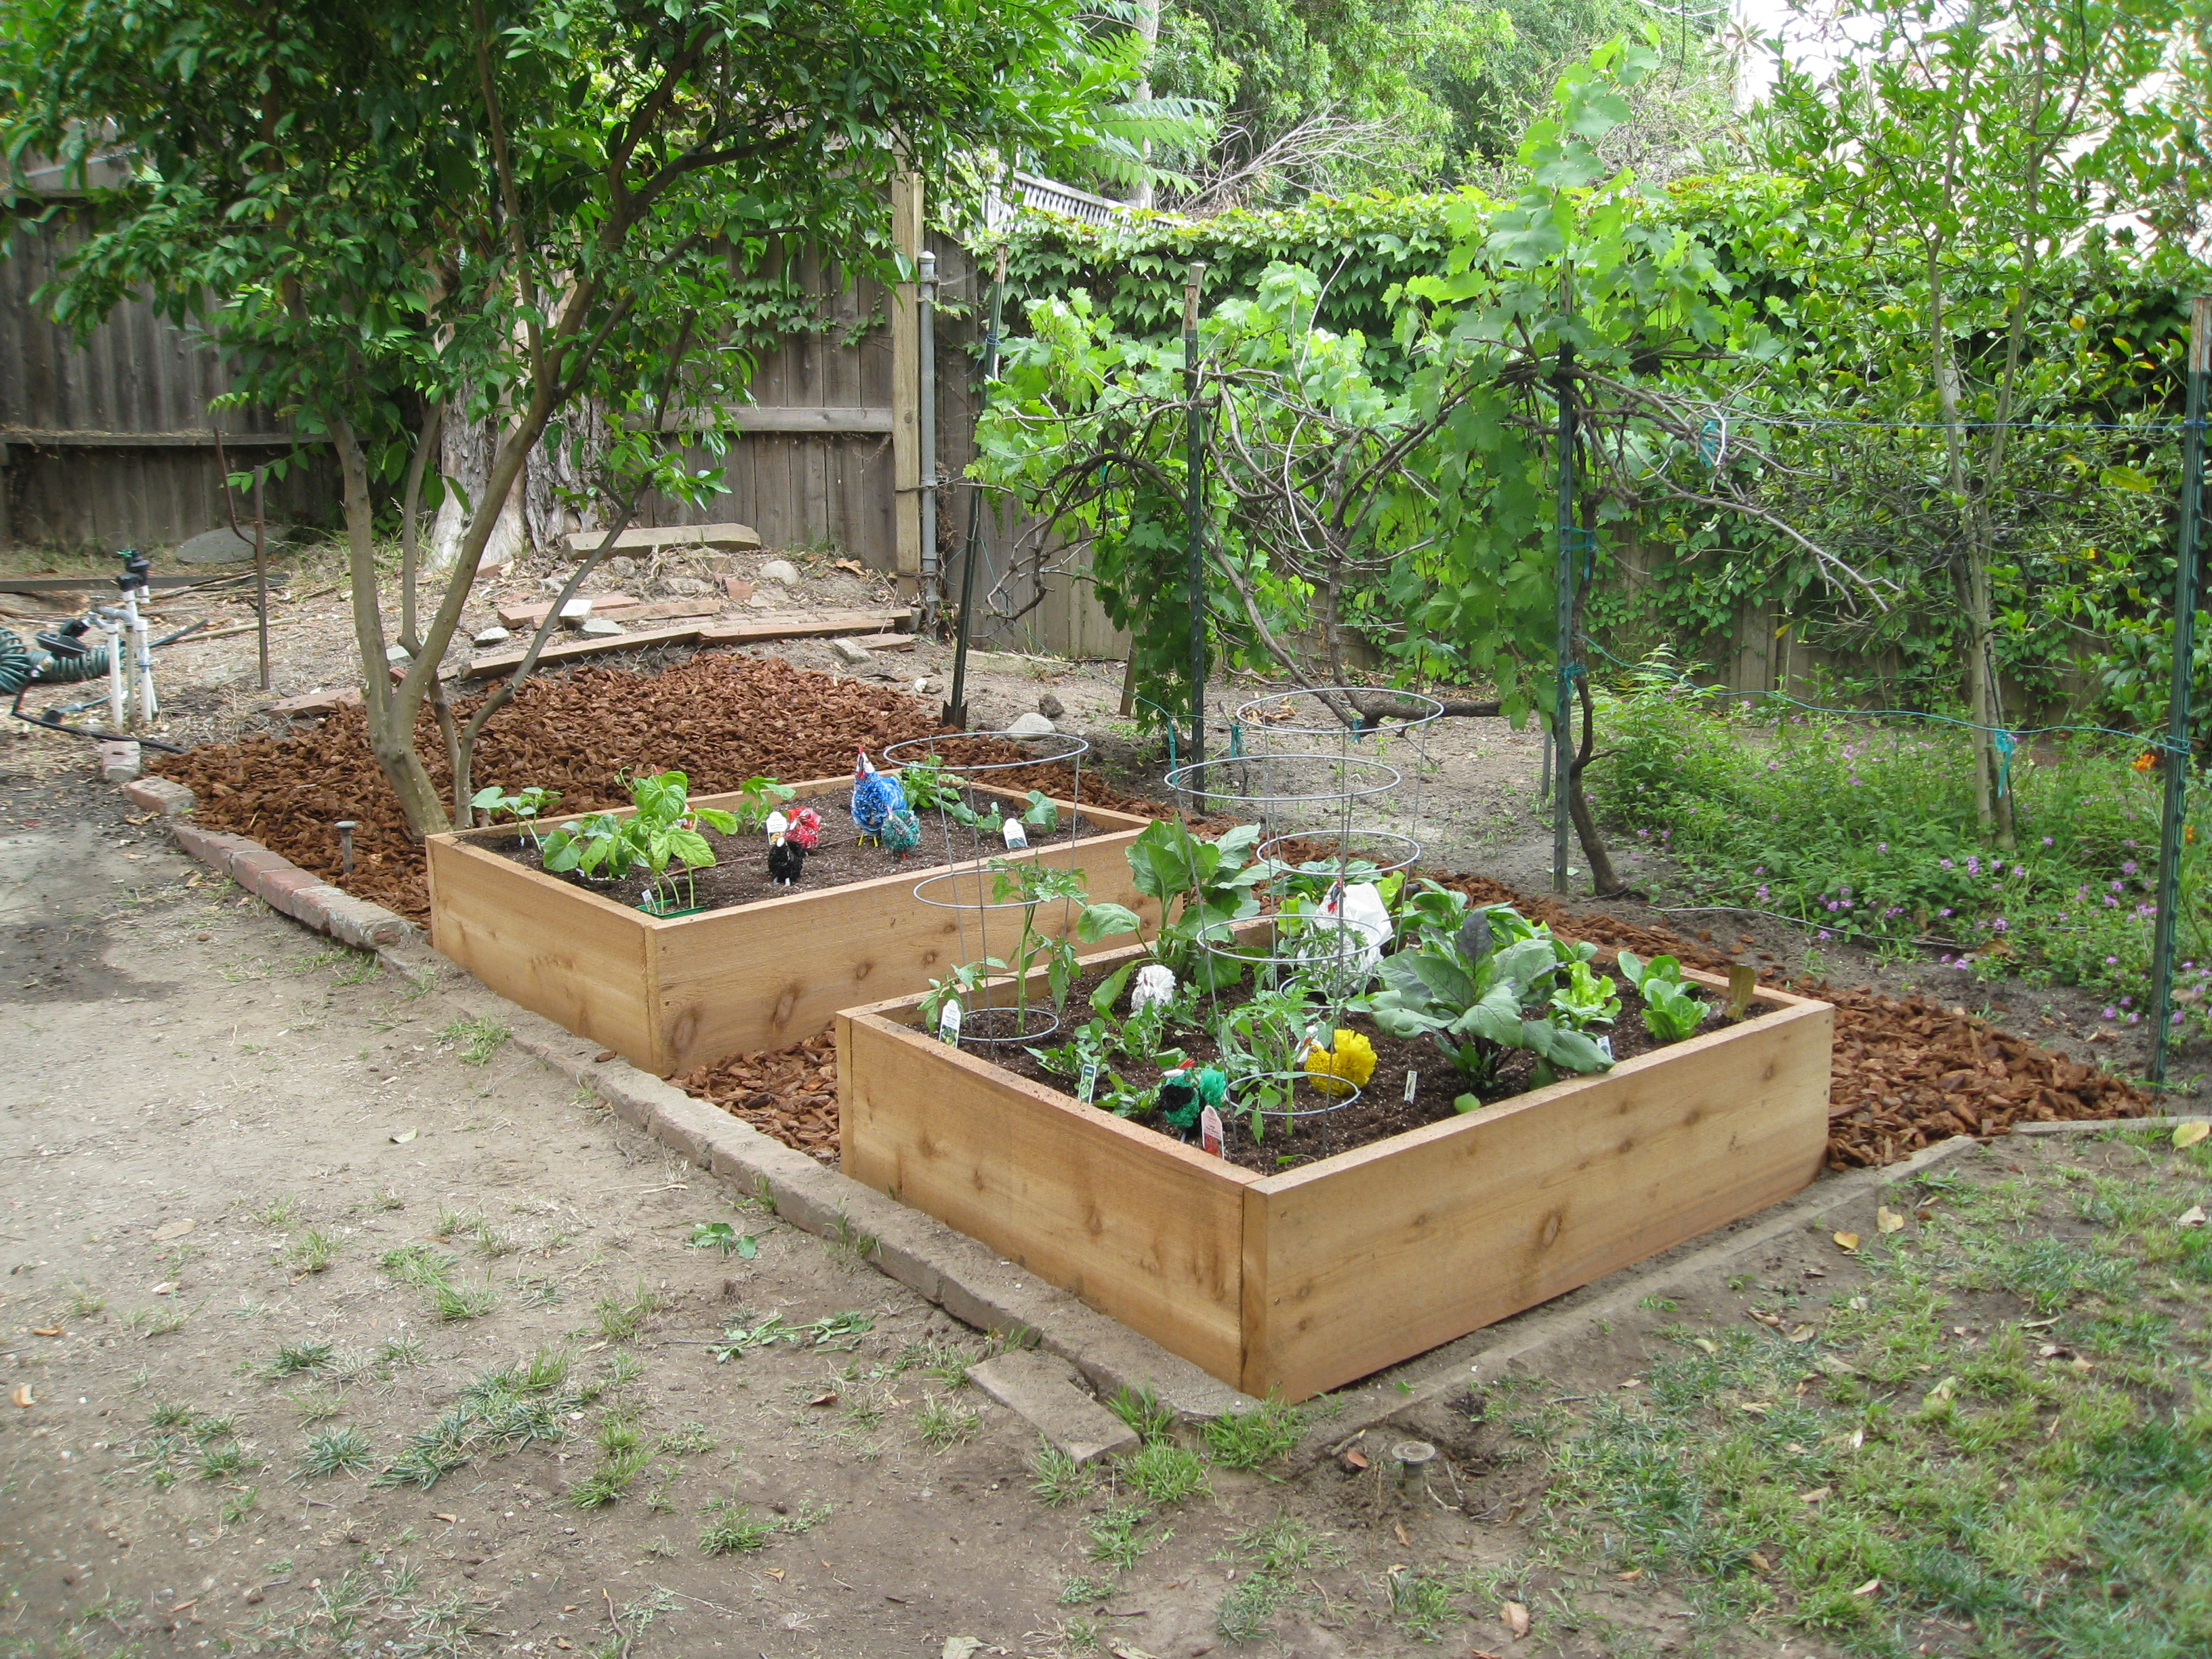 The finished product - 2 raised beds with biointensively planted crops